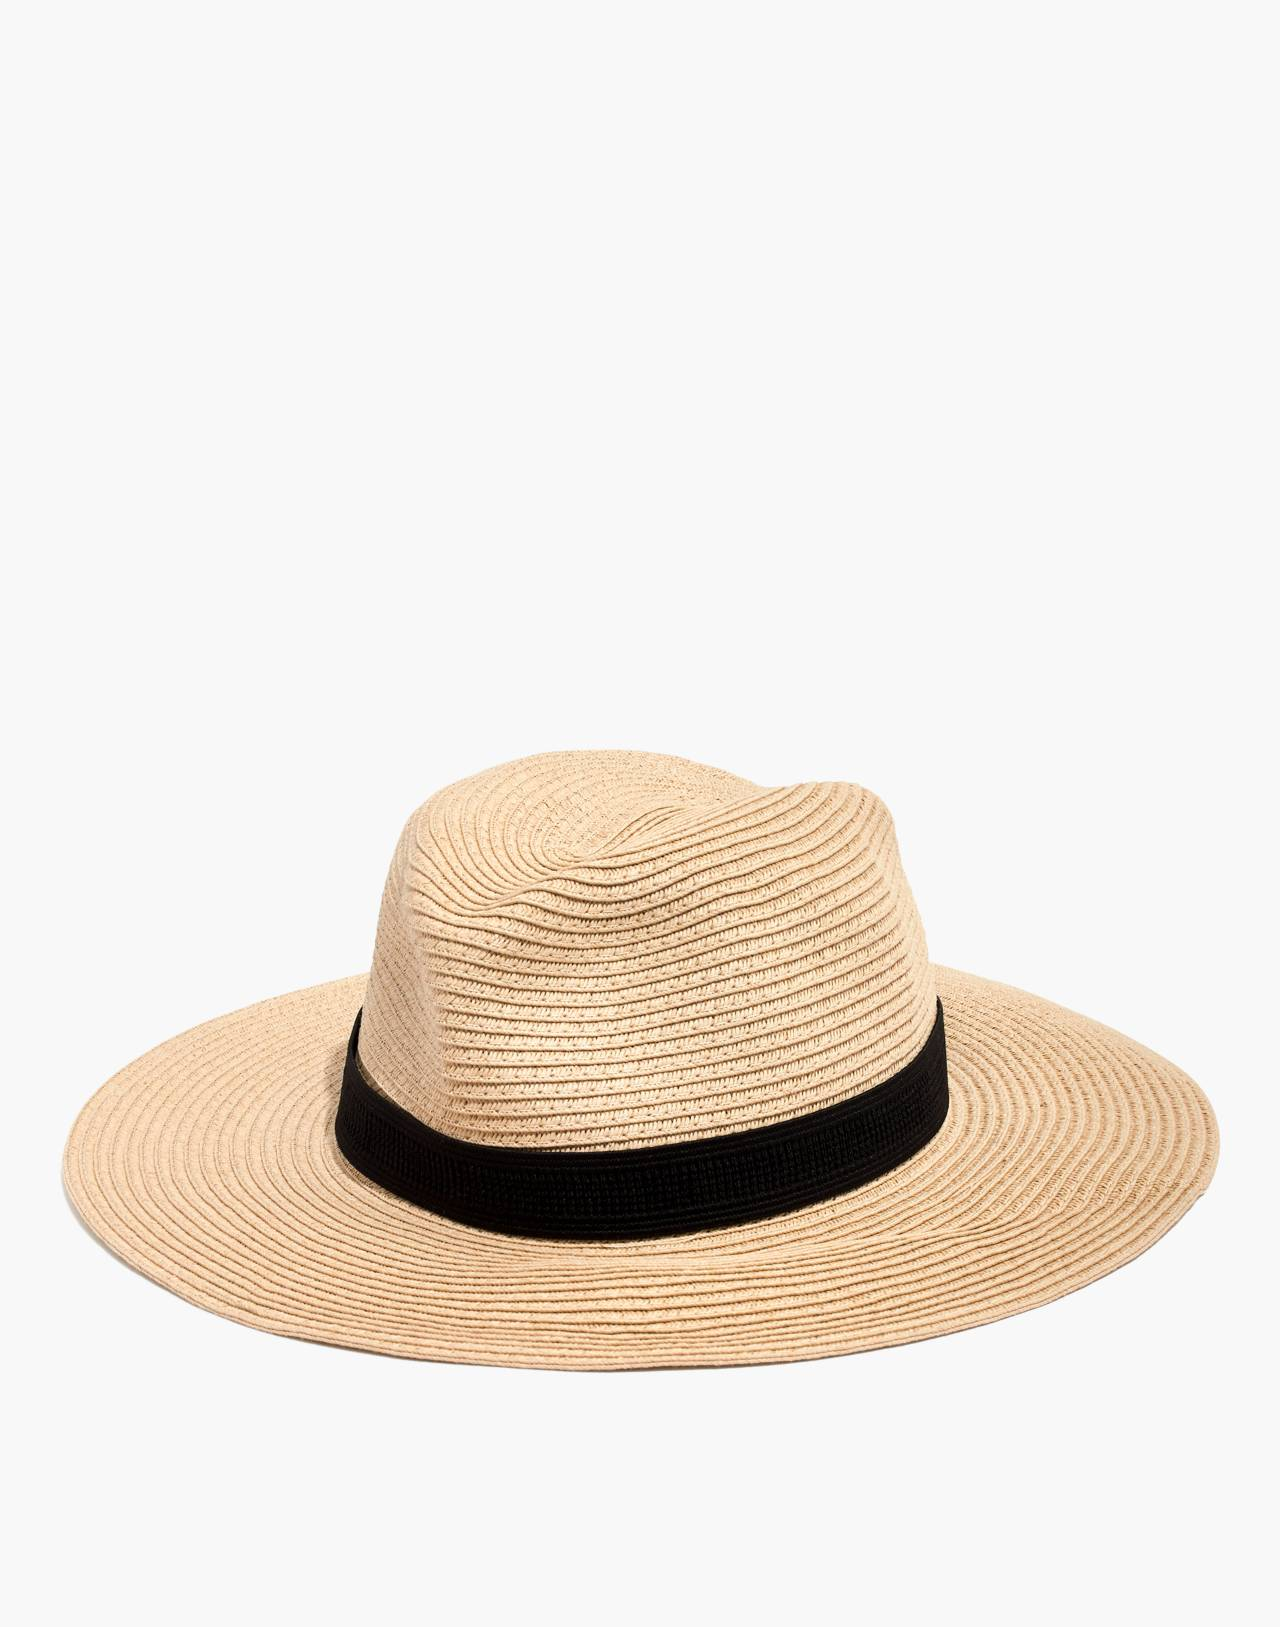 Packable Mesa Straw Hat in natural straw image 1